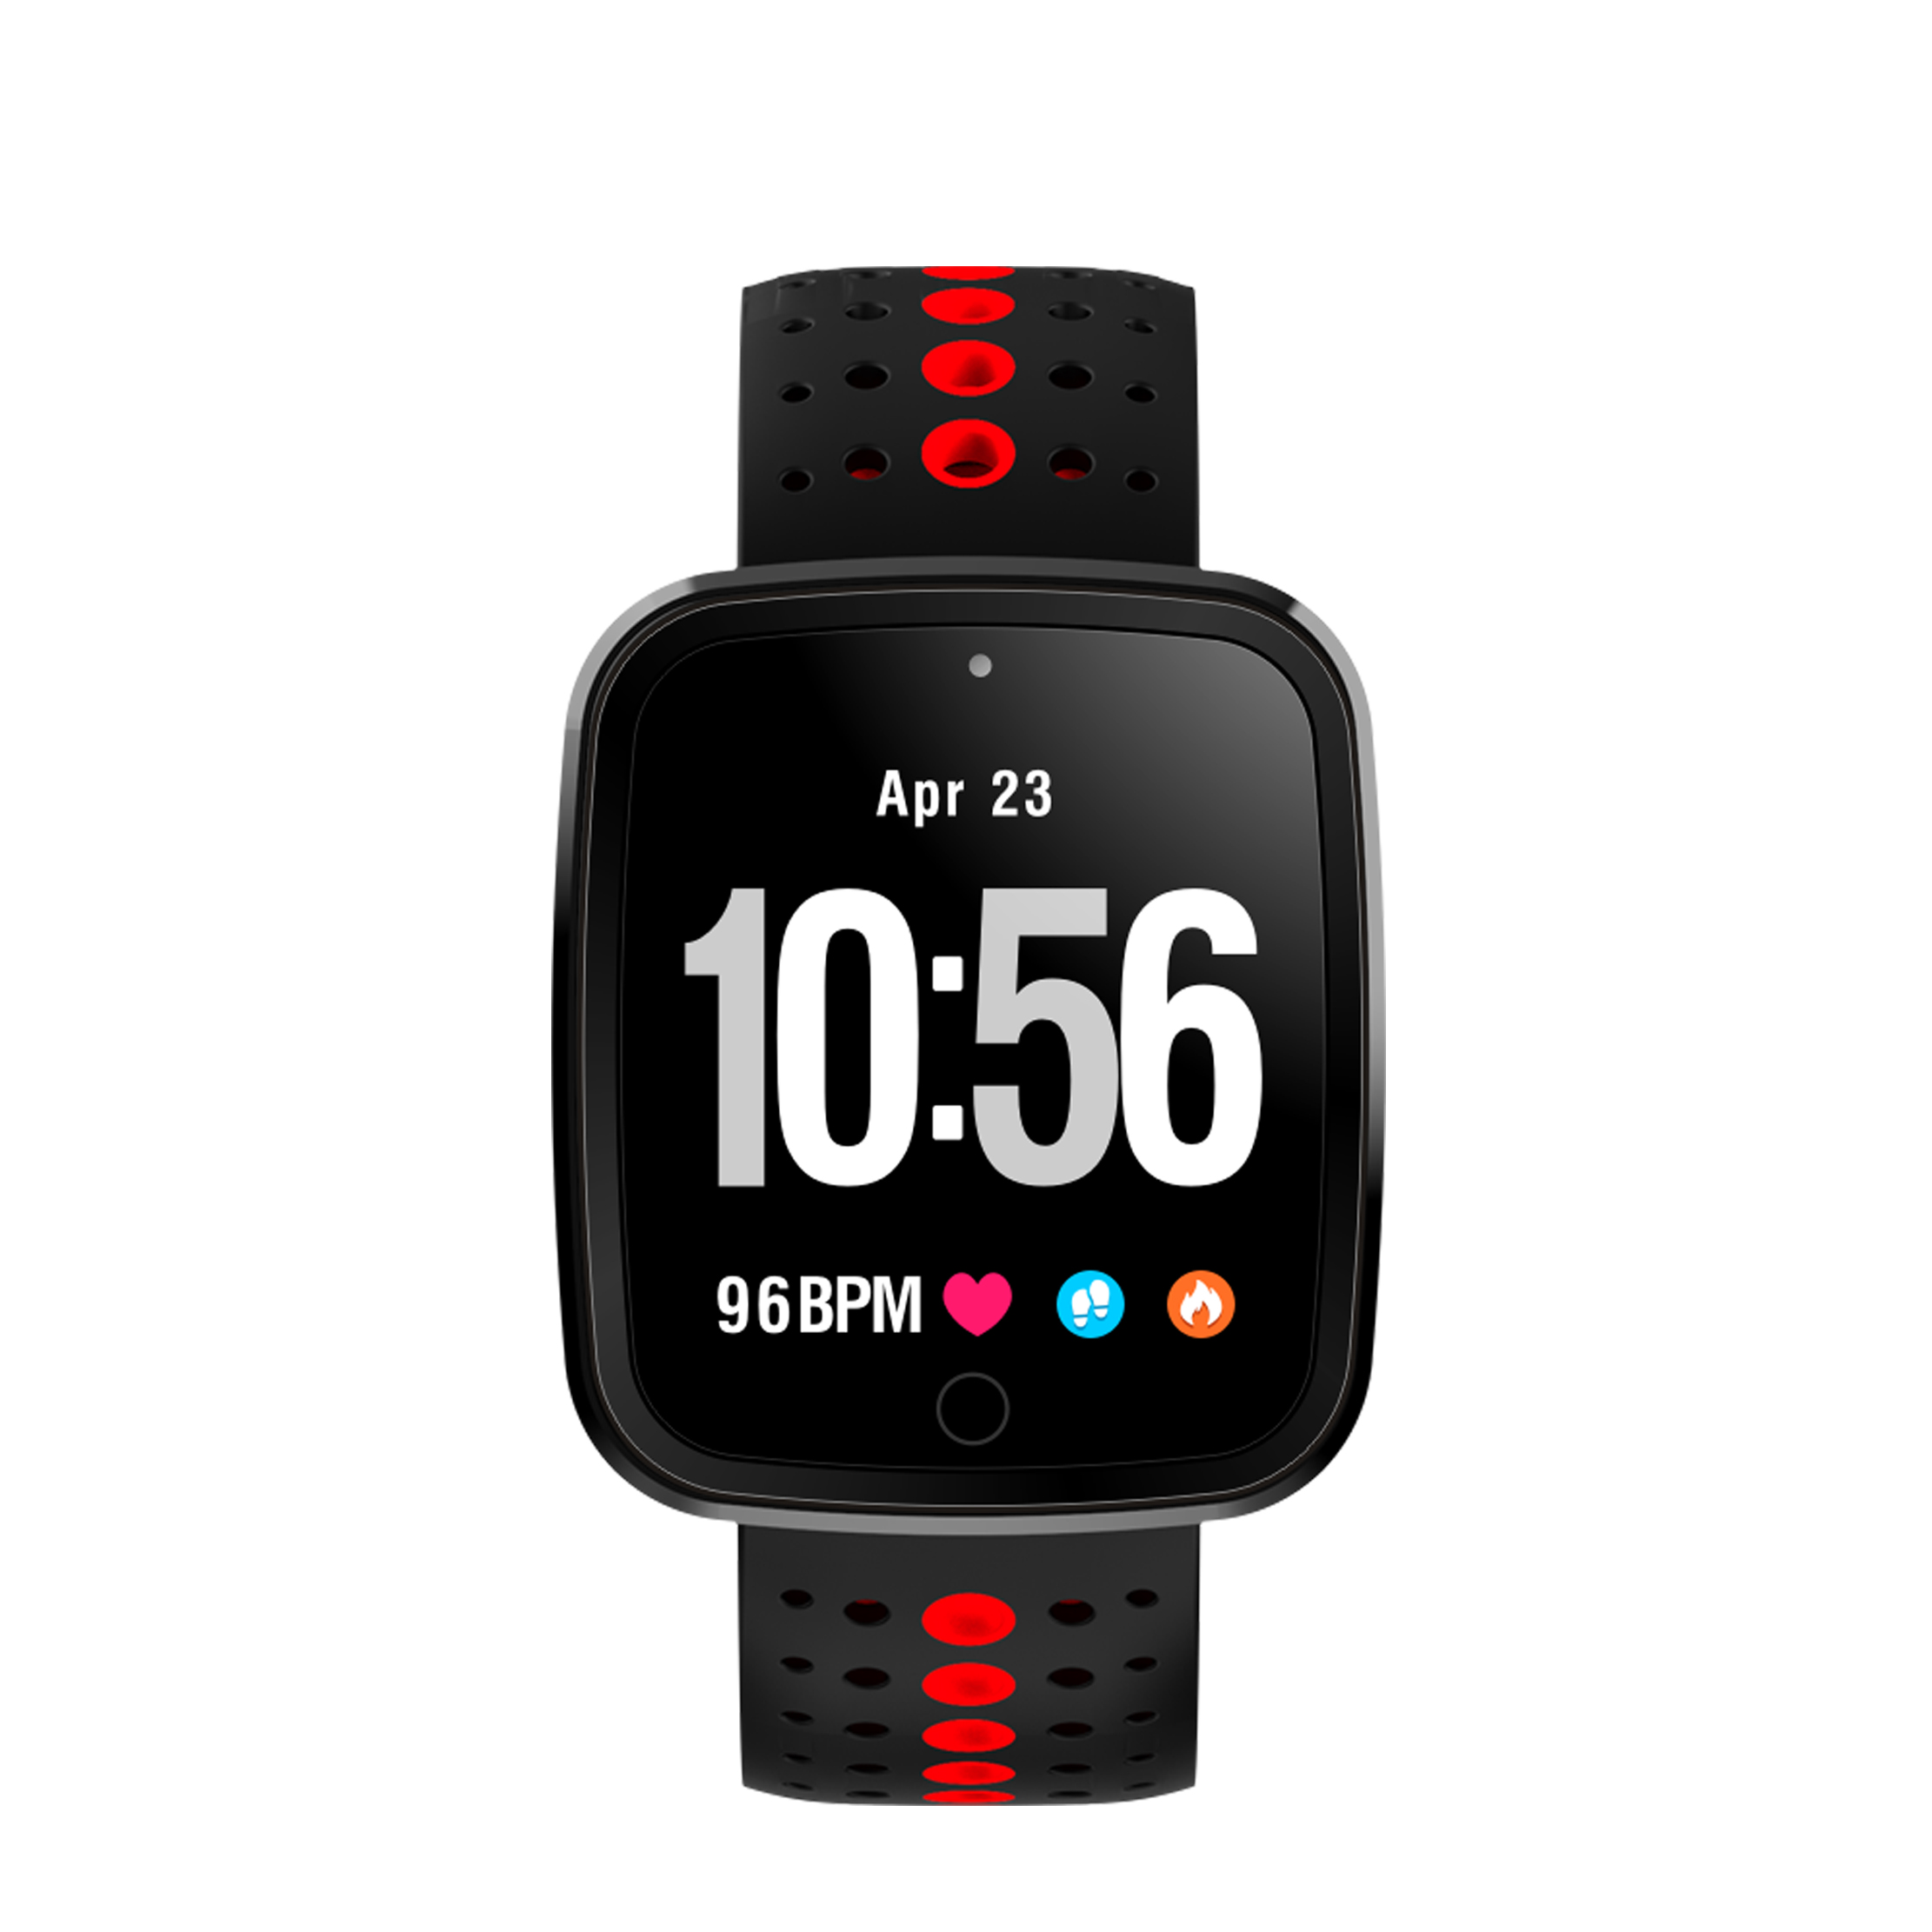 OGEDA Heart Rate Monitor Color OLED Sports Men Smart Watch Intelligent Fitness Tracker Smart Wristband Bracelet for Android IOS id115 smart watch fitness sport wristband watch for ios android iphone heart rate monitor tracker men women watch oled bracelet